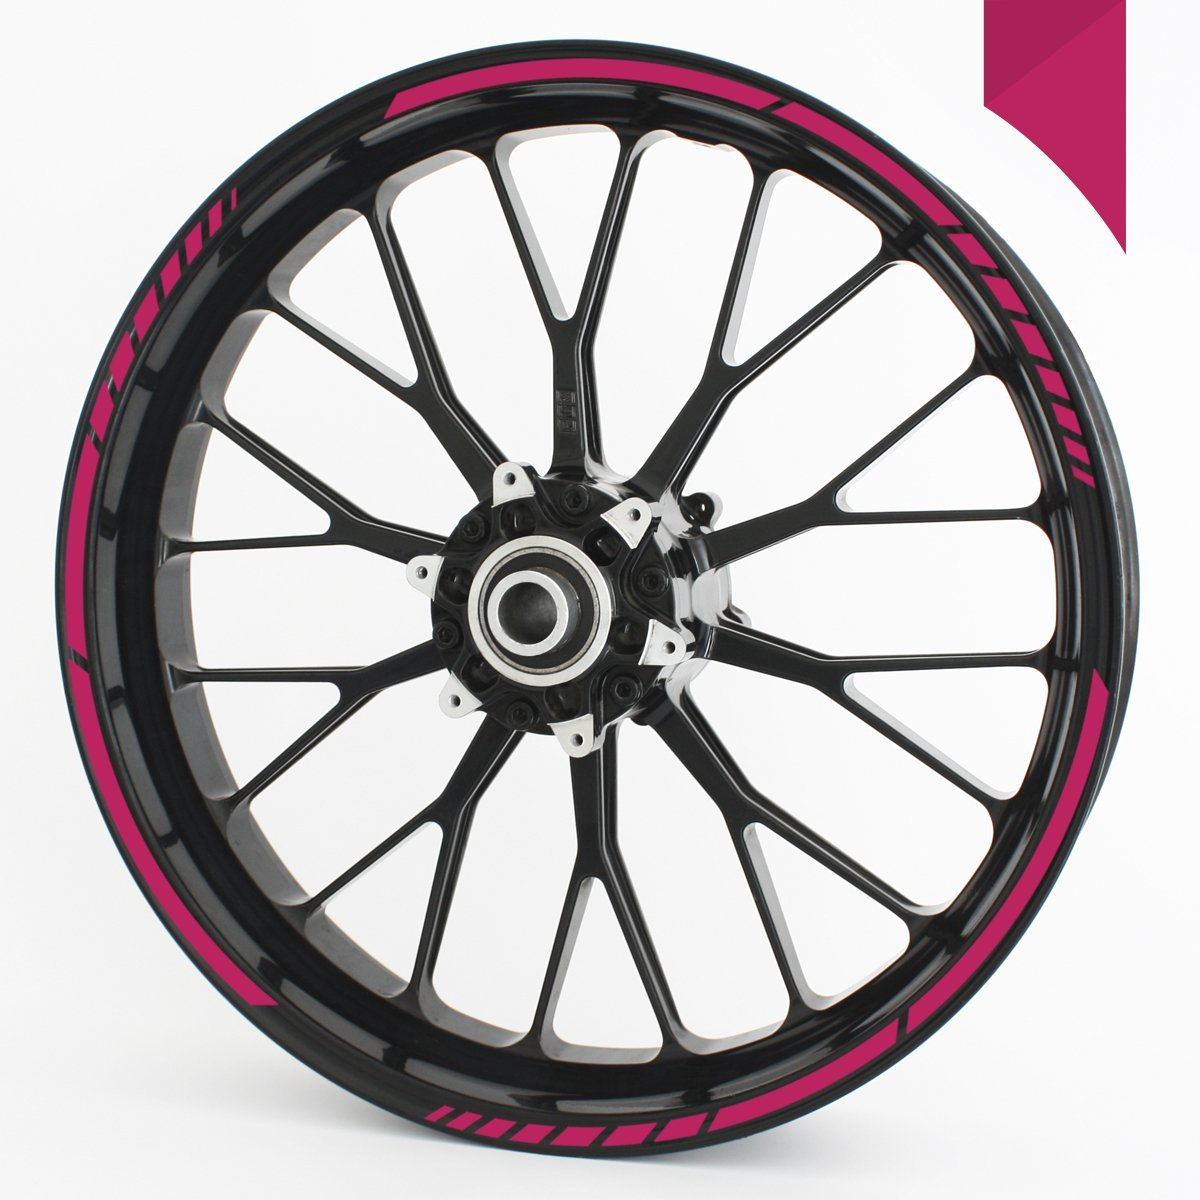 18 and 19 Motorcycle /& Car Wheels 17 PINK Wandkings GP wheel rim sticker for 15 colour selectable 16